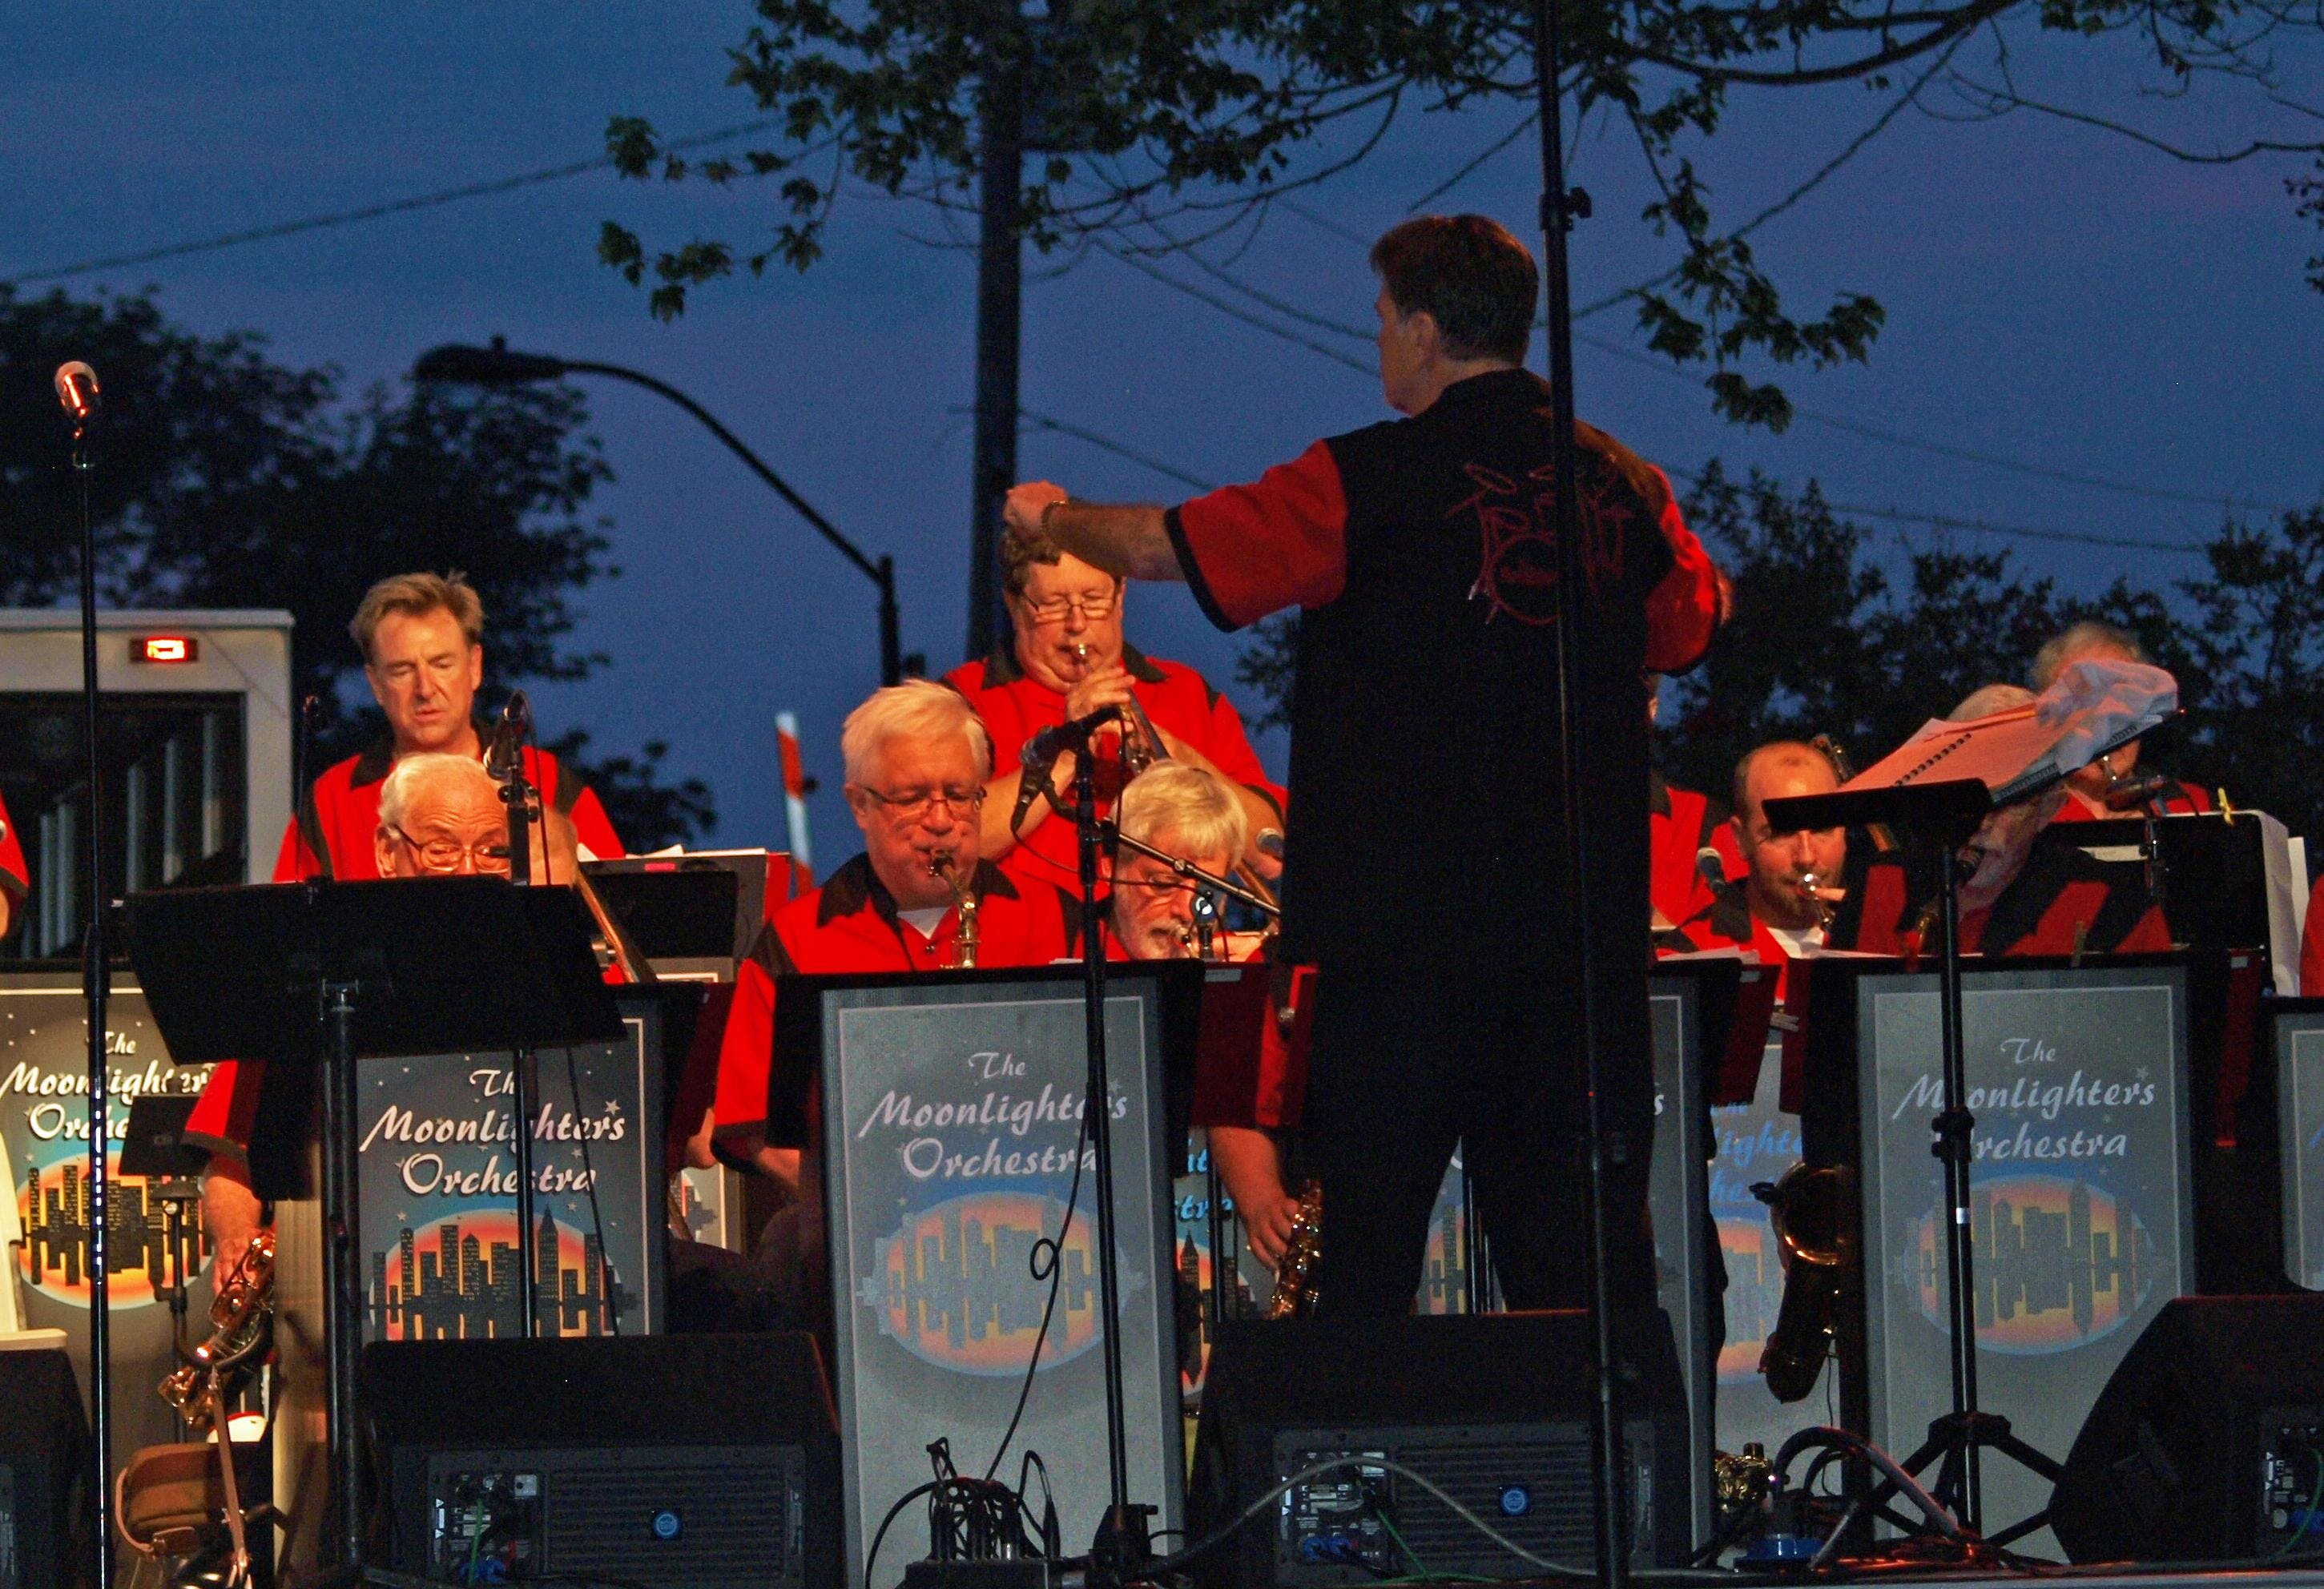 LCAC Concert: The Moonlighters Orchestra